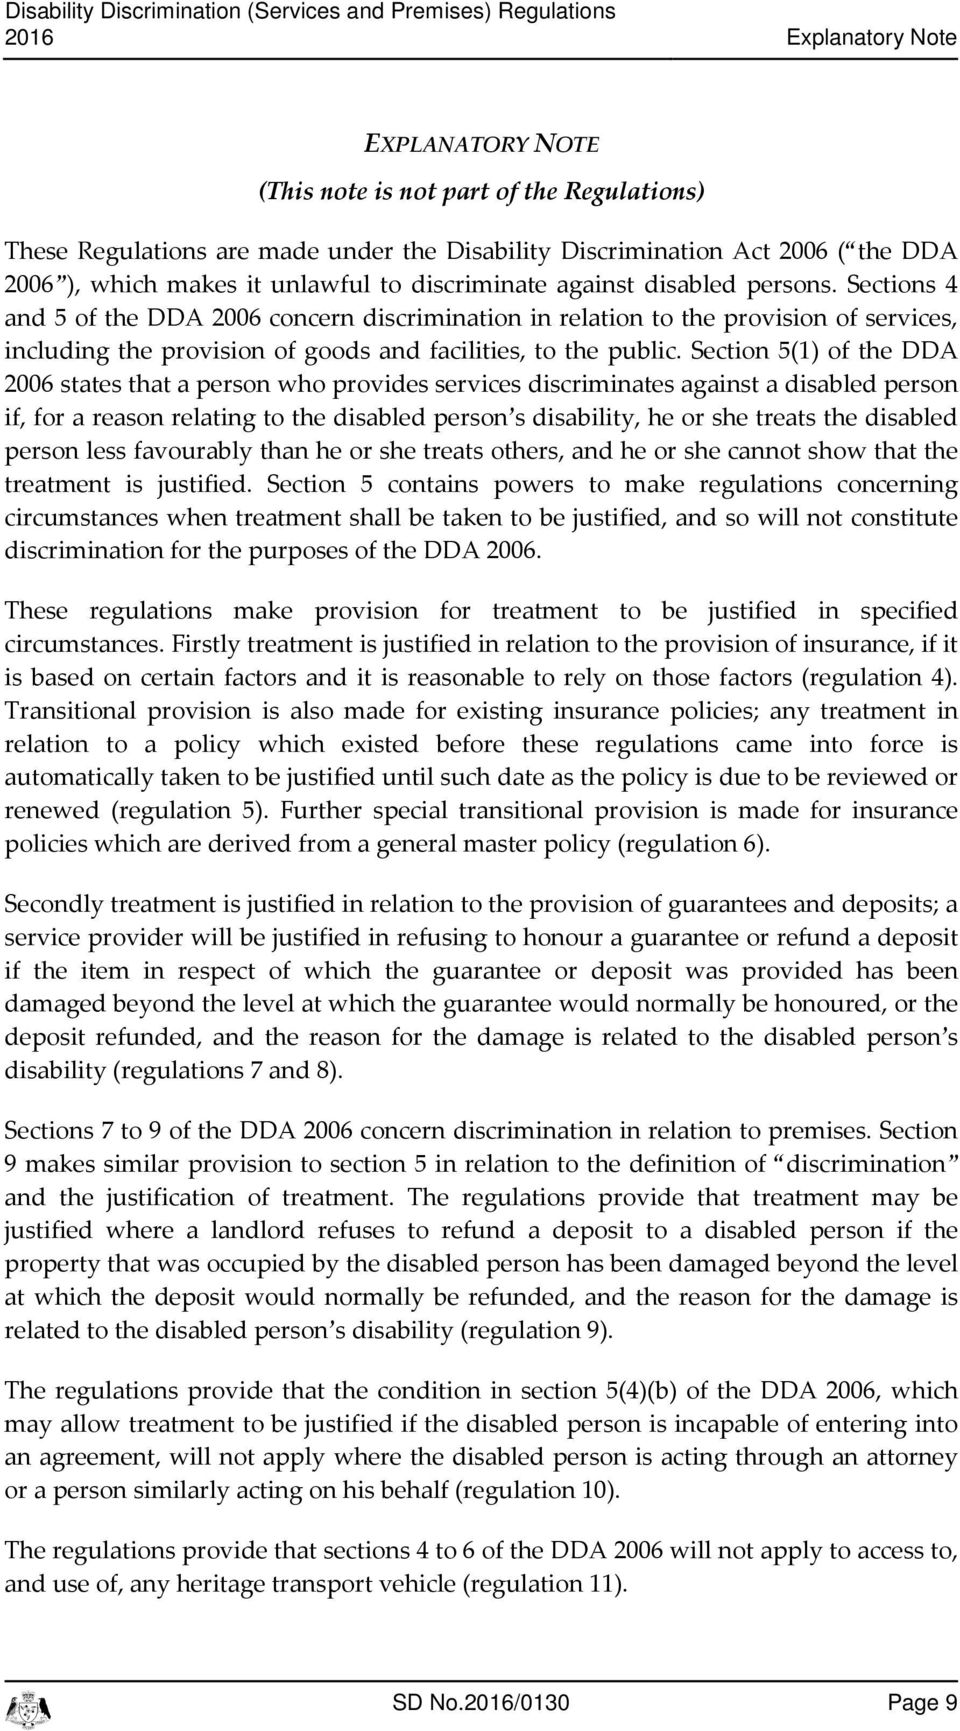 Setions 4 and 5 of the DDA 2006 onern disrimination in relation to the provision of servies, inluding the provision of goods and failities, to the publi.